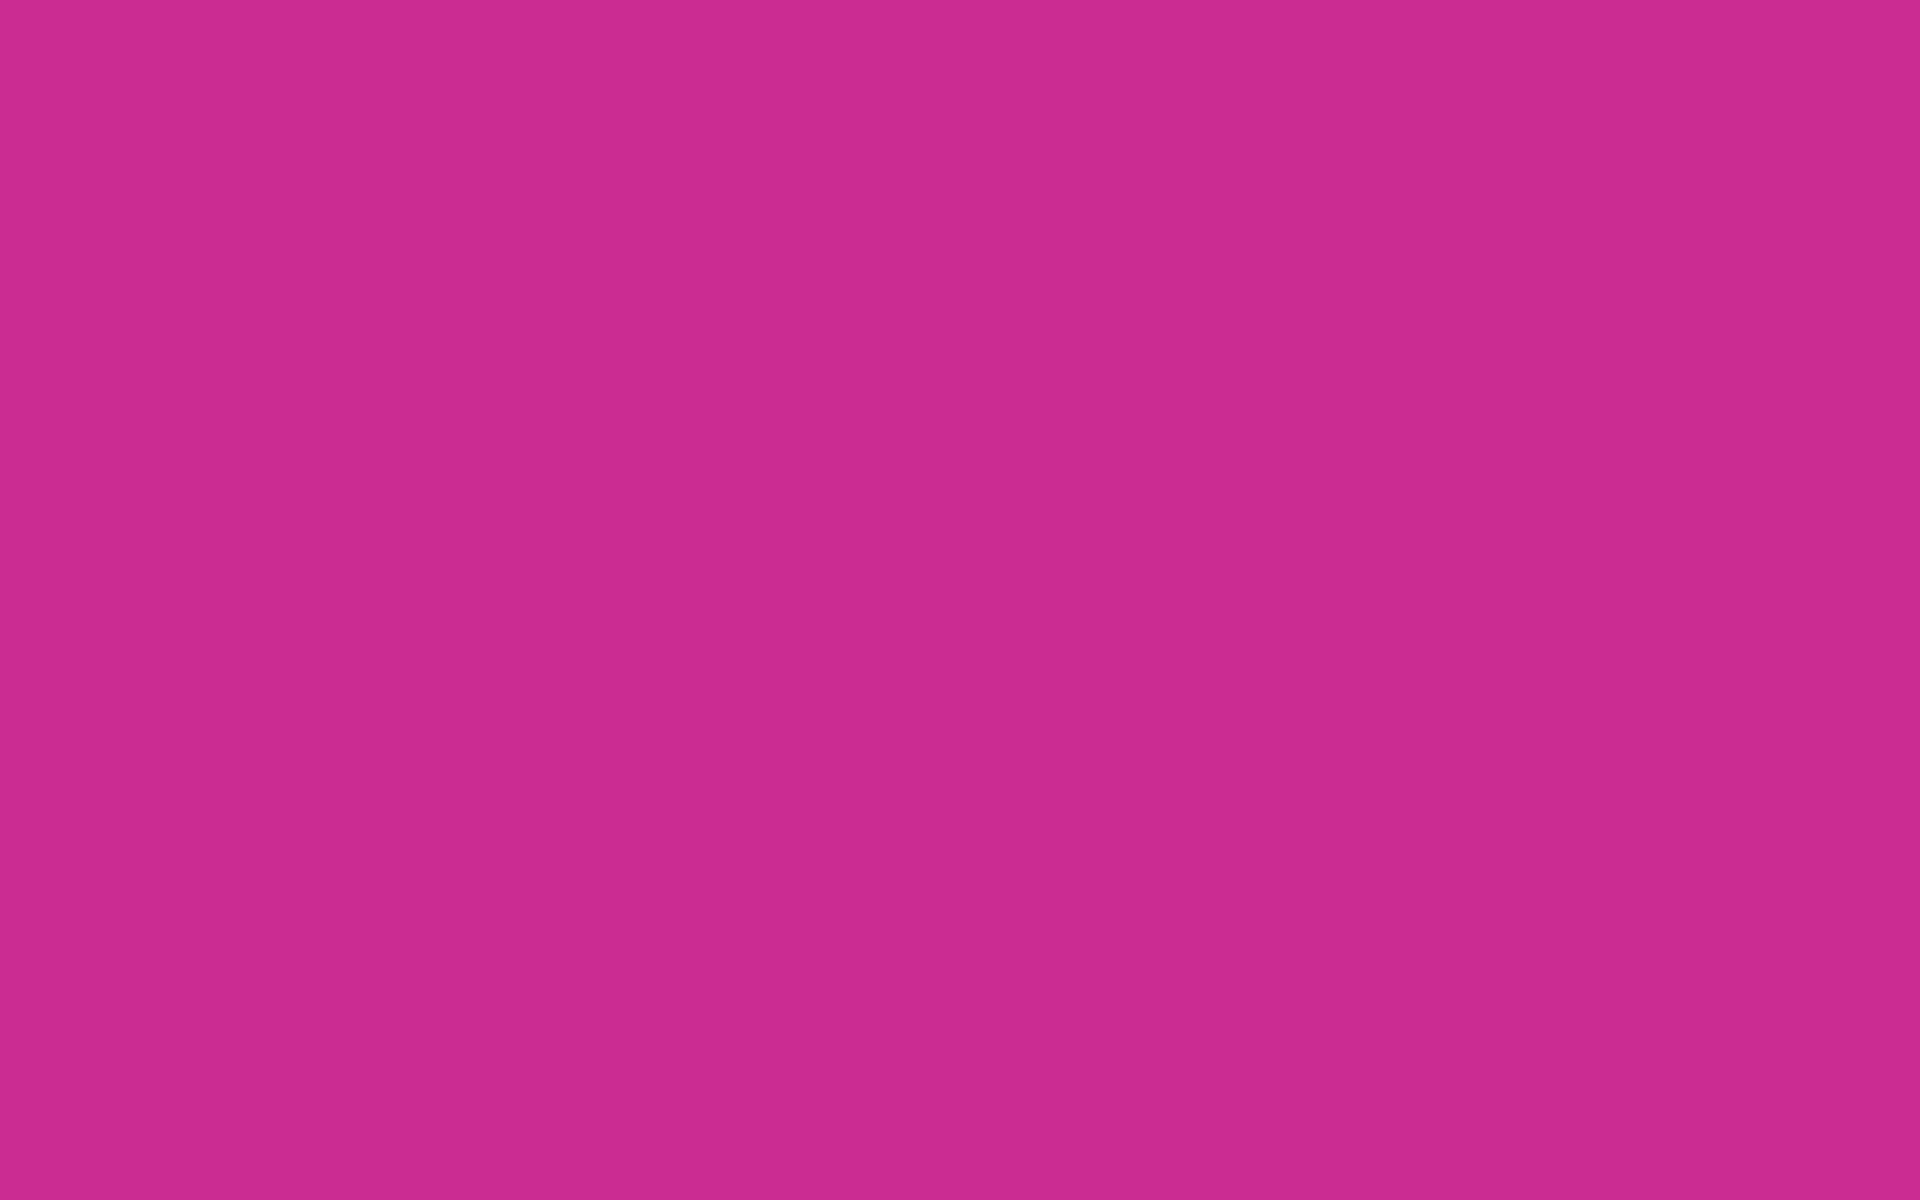 1920x1200 Royal Fuchsia Solid Color Background